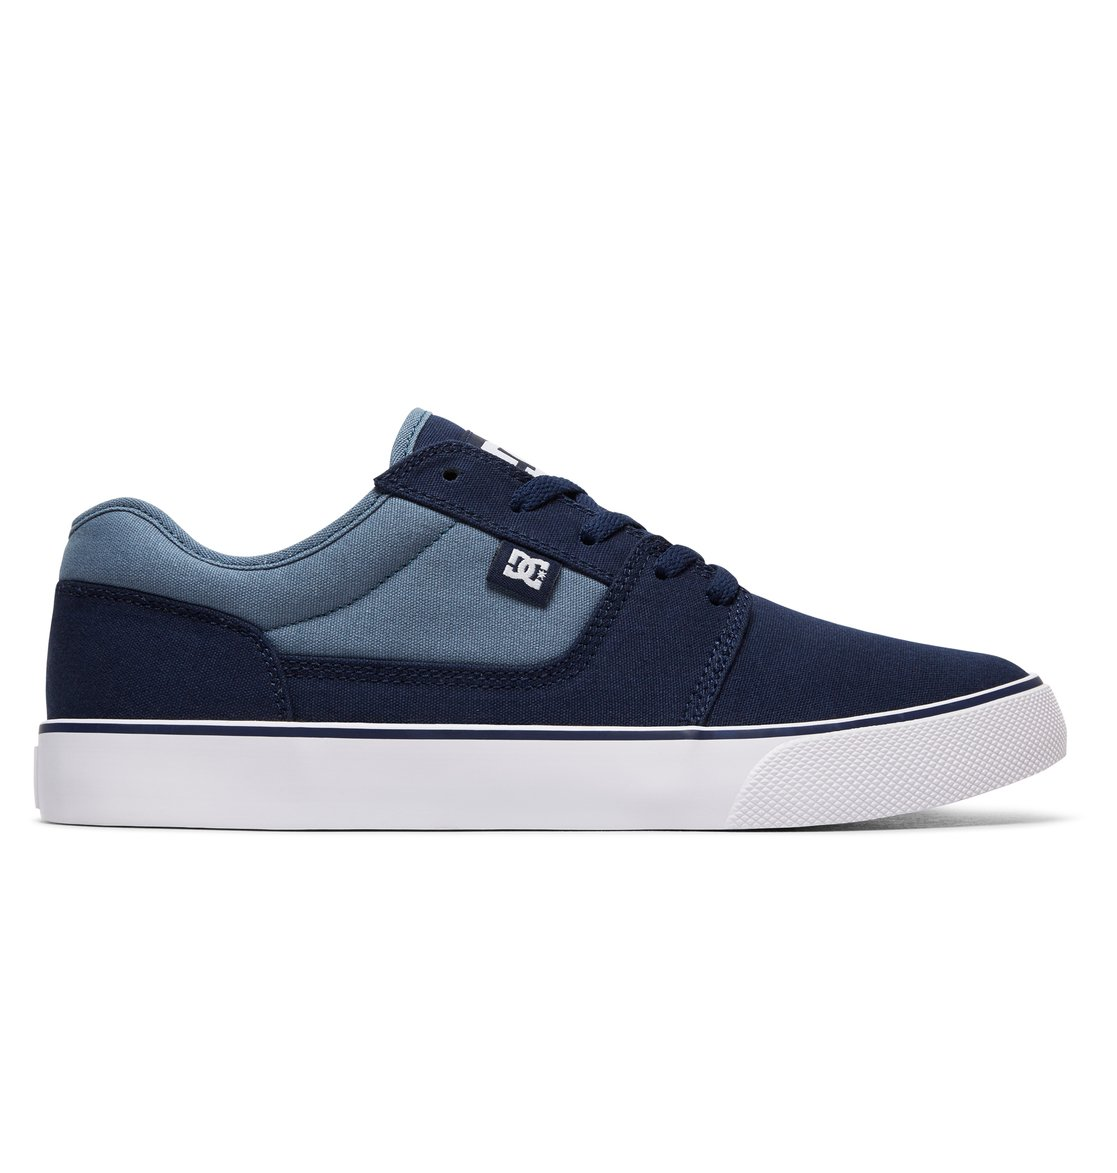 Chaussures DC Shoes Casual femme